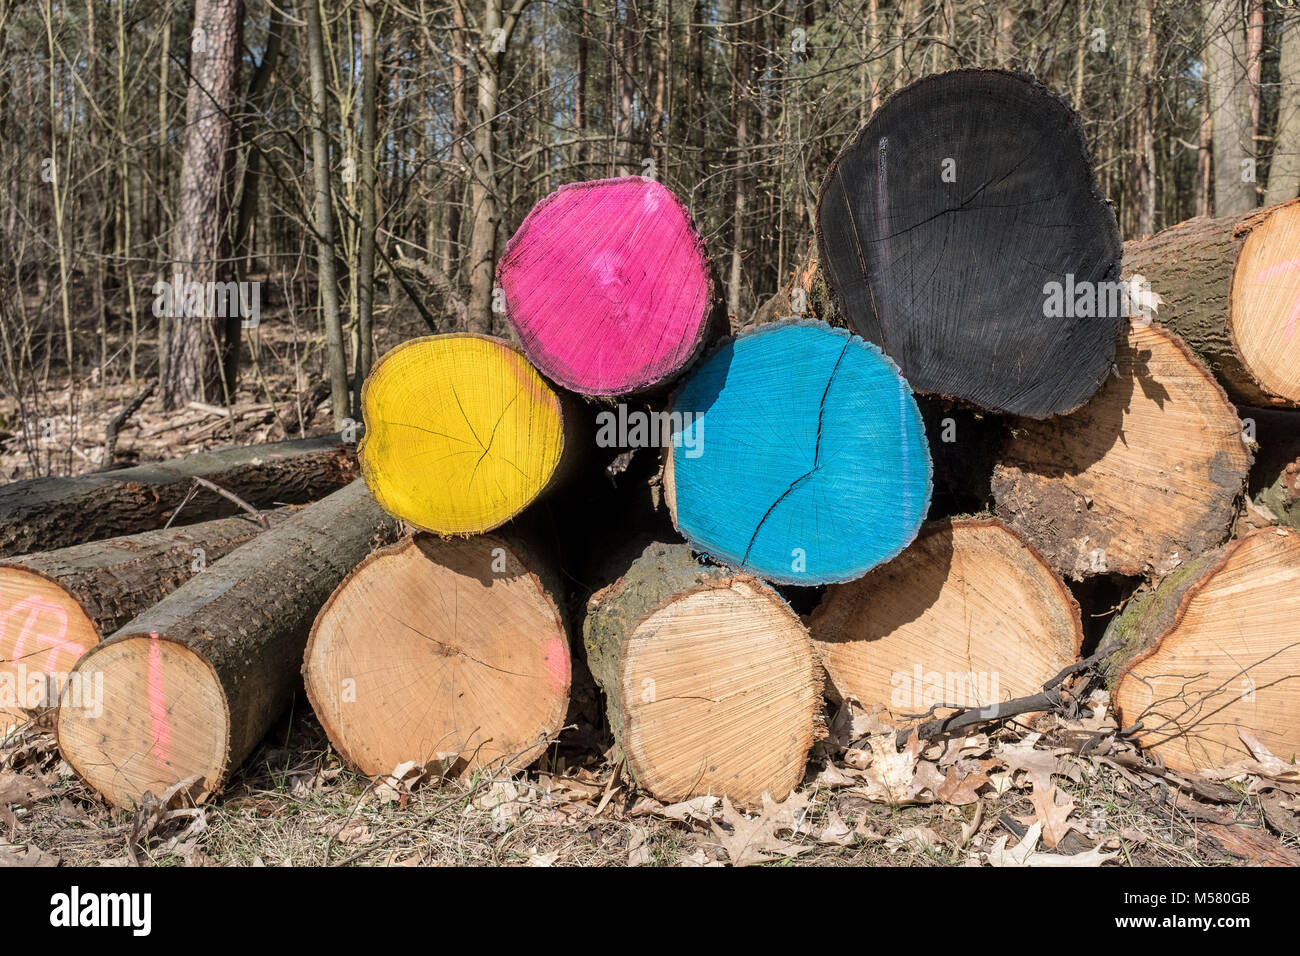 Wood trunks in the forrest Grunewald in Berlin  painted in cyan, magenta, yellow and black. - Stock Image